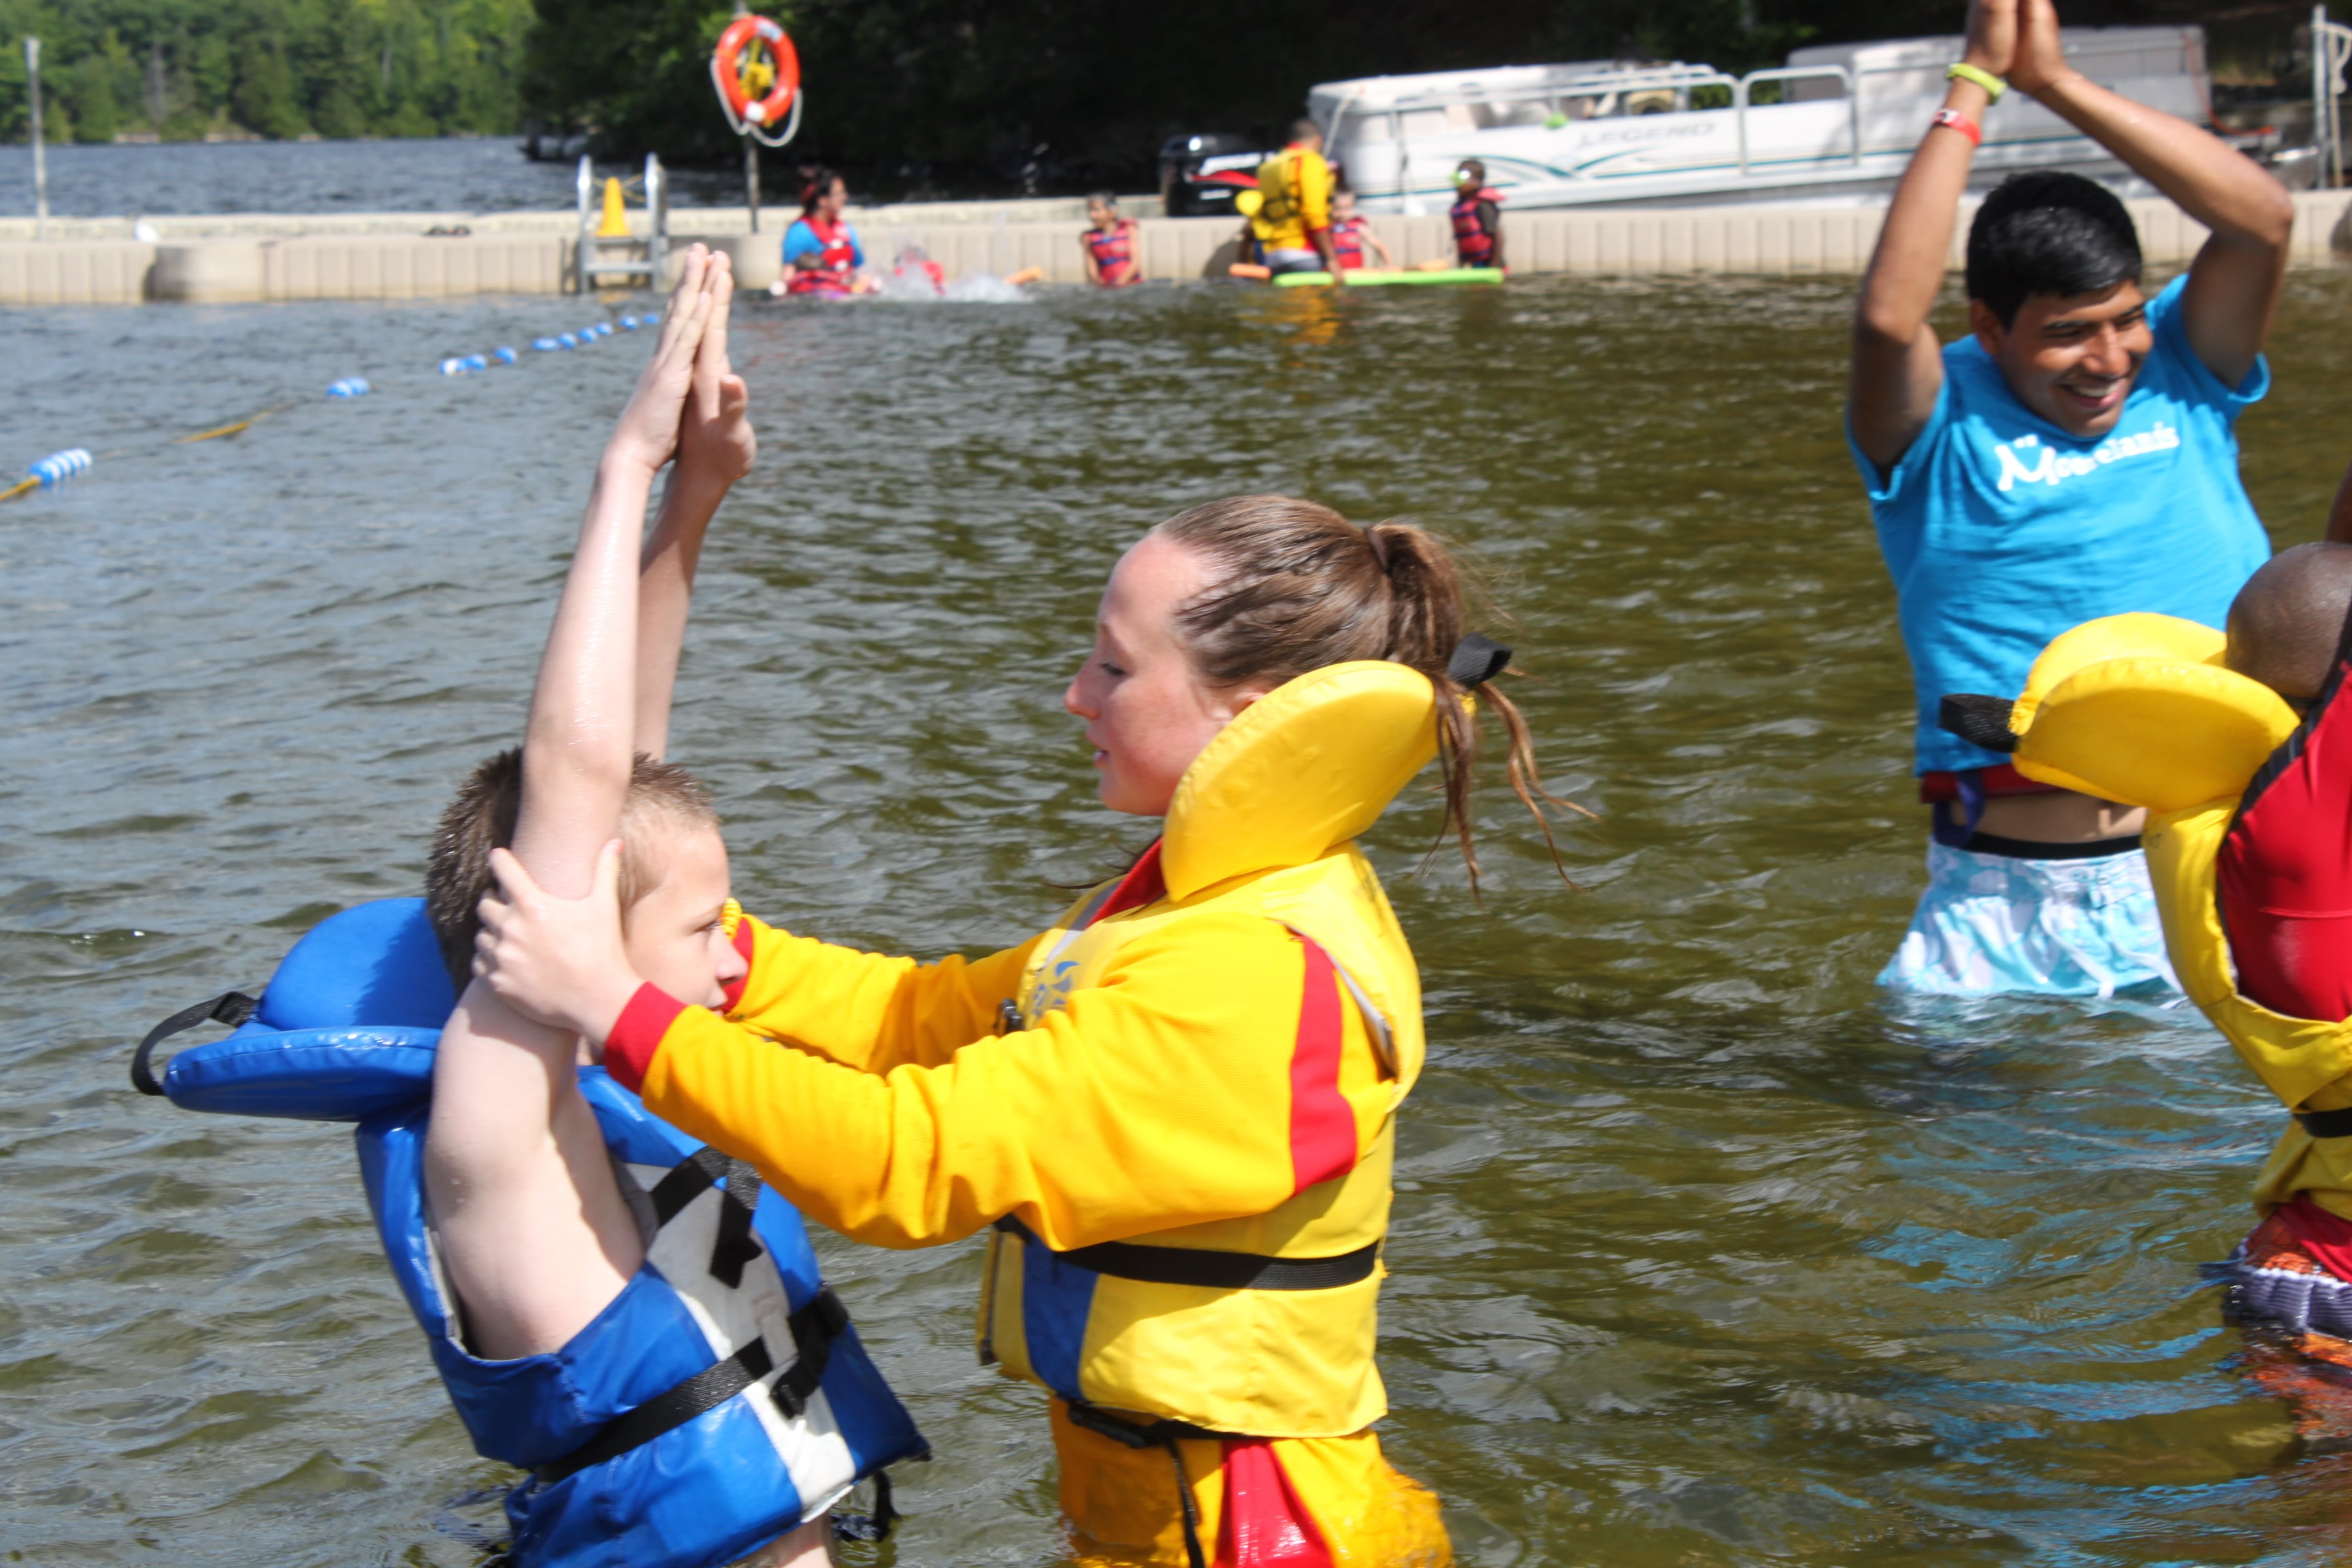 Lifeguards needed at Moorelands summer camp for kids